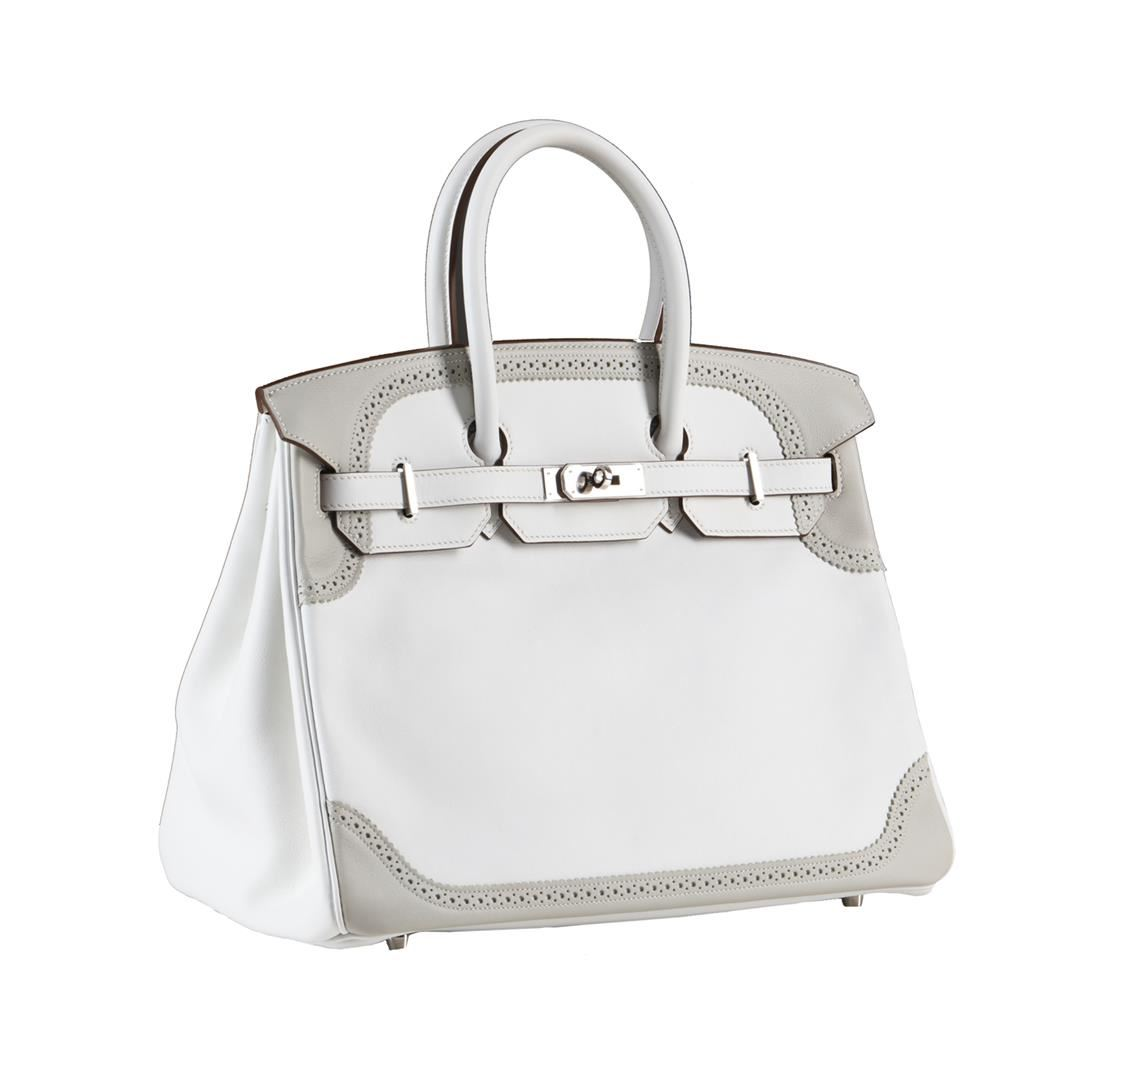 59734ba70c0 Image 1   Hermes 35cm White and Gris Perle Swift Leather Ghillies Birkin  Bag ...